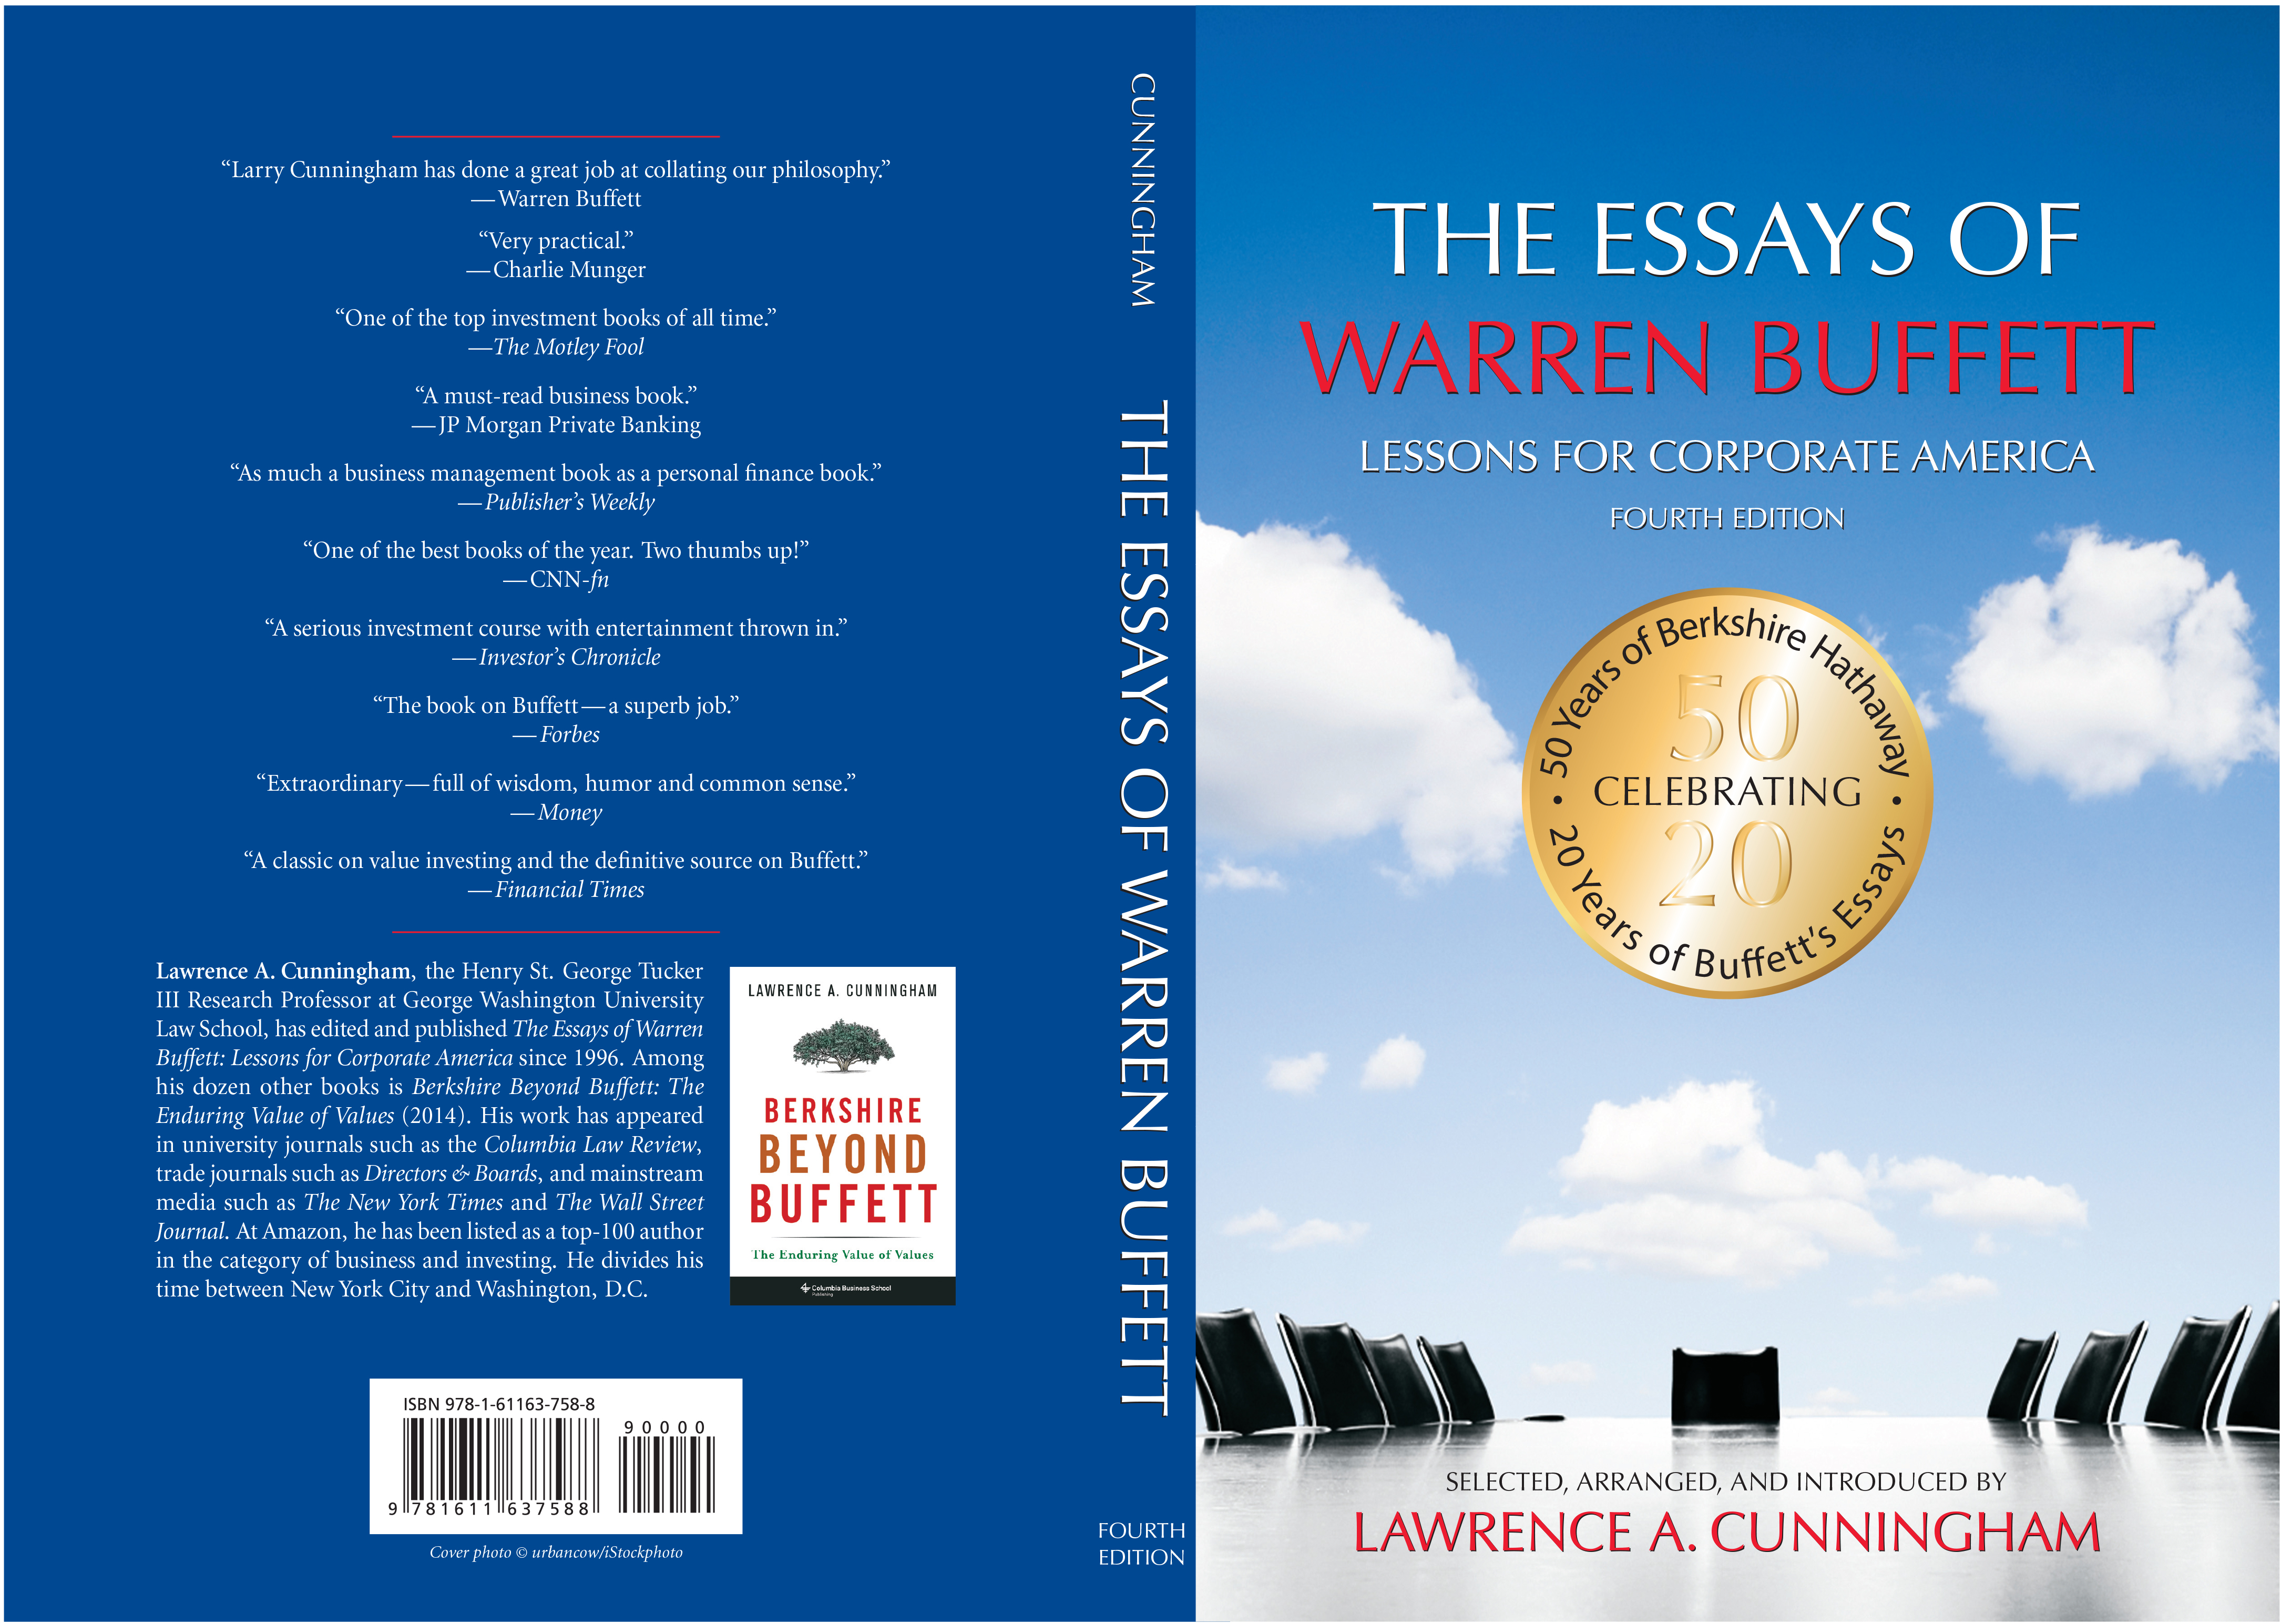 002 Essay Example The Essays Of Warren Buffett Lessons For Corporate Remarkable America Third Edition 3rd Second Pdf Audio Book Full